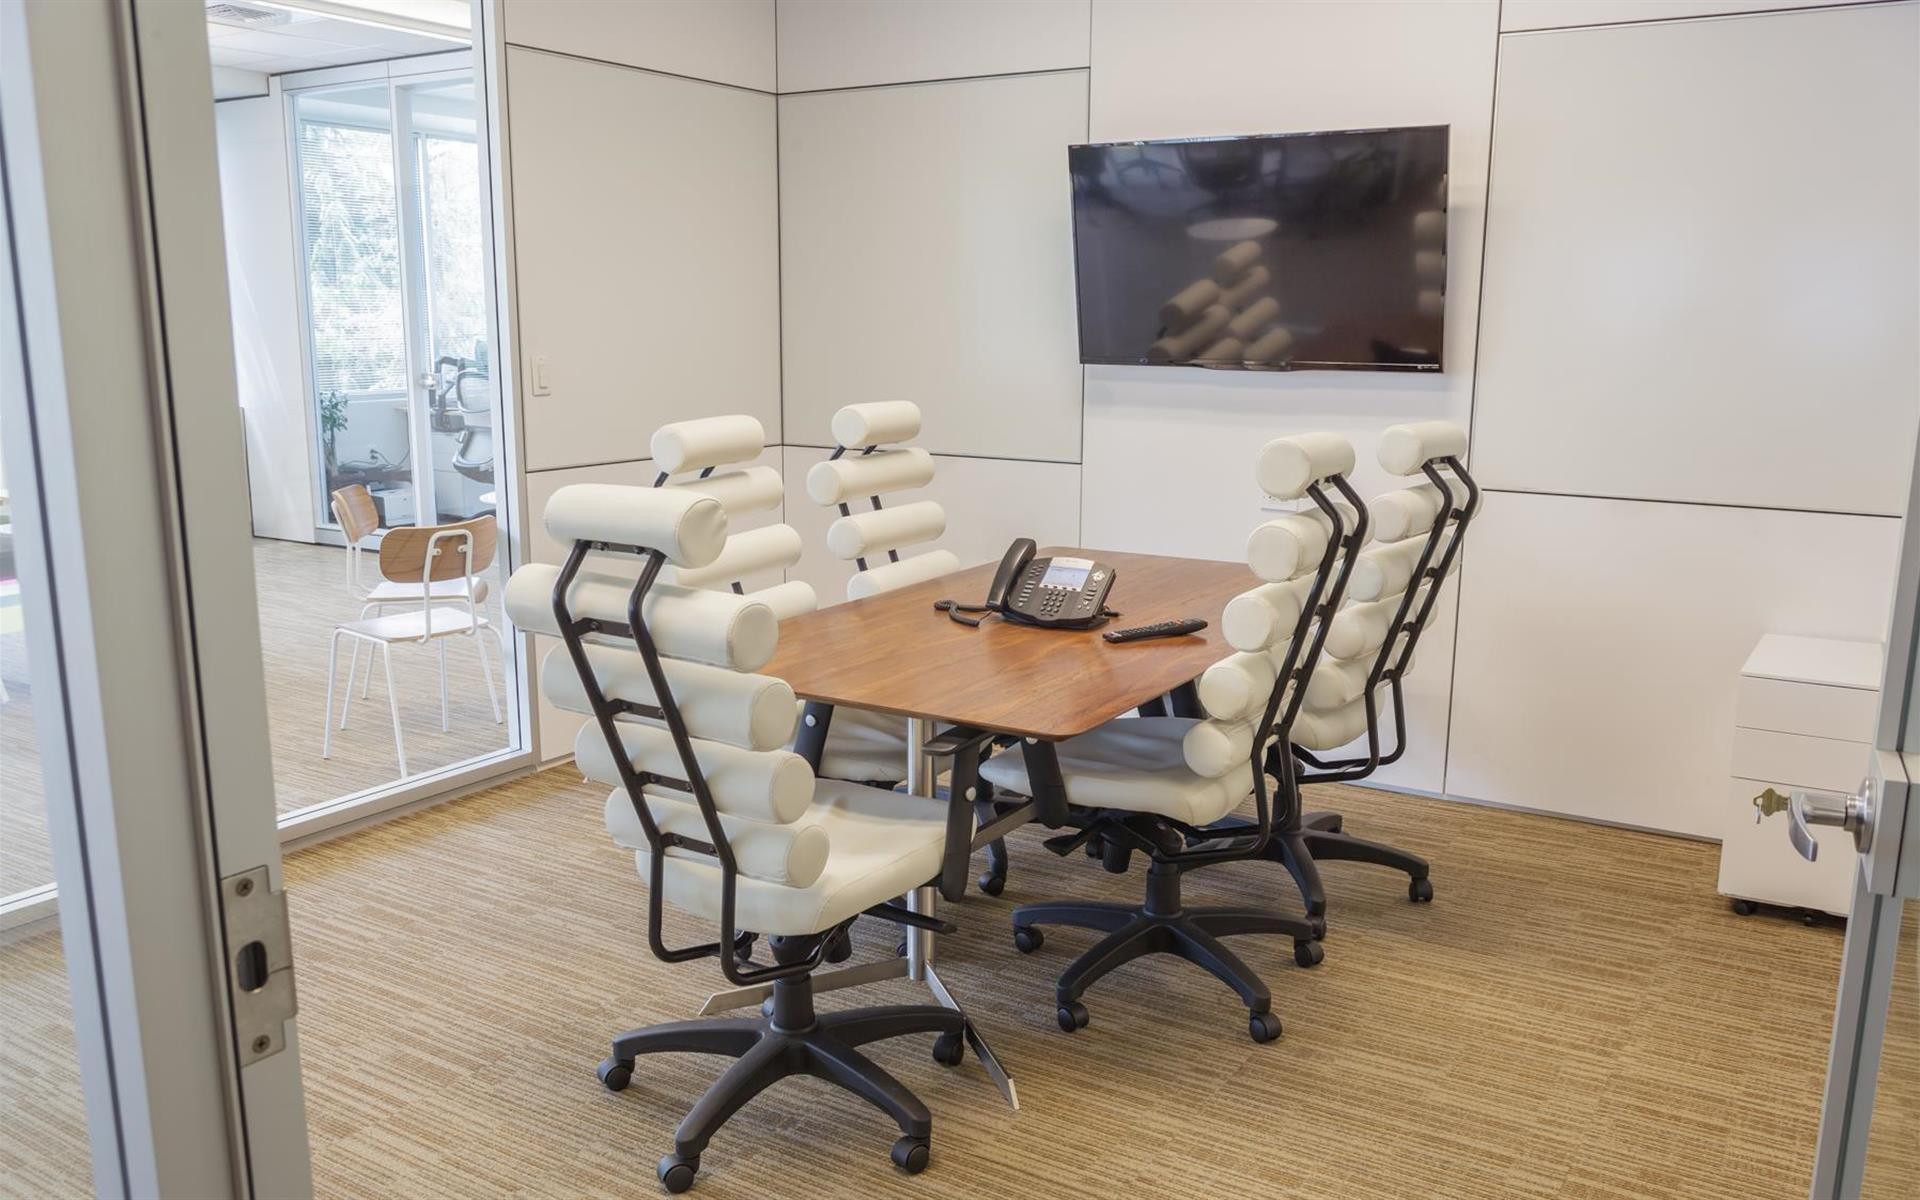 NGIN Workplace - Meeting Room - Chichen Itza